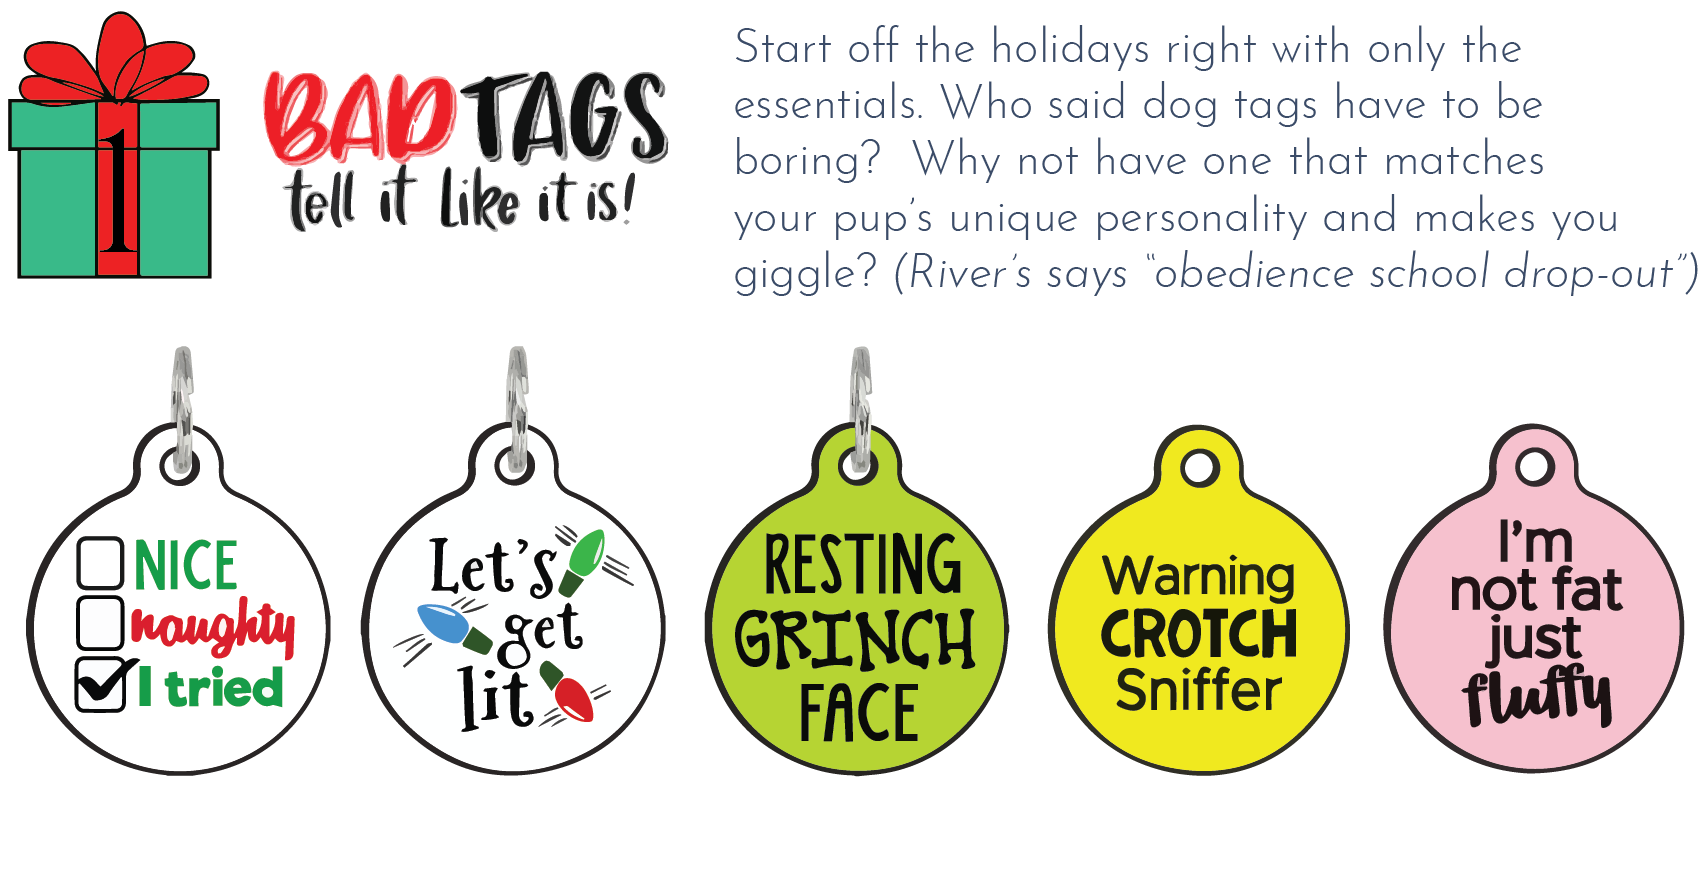 Bad Tags - Whyld River top 5 holiday gifts for dog lovers